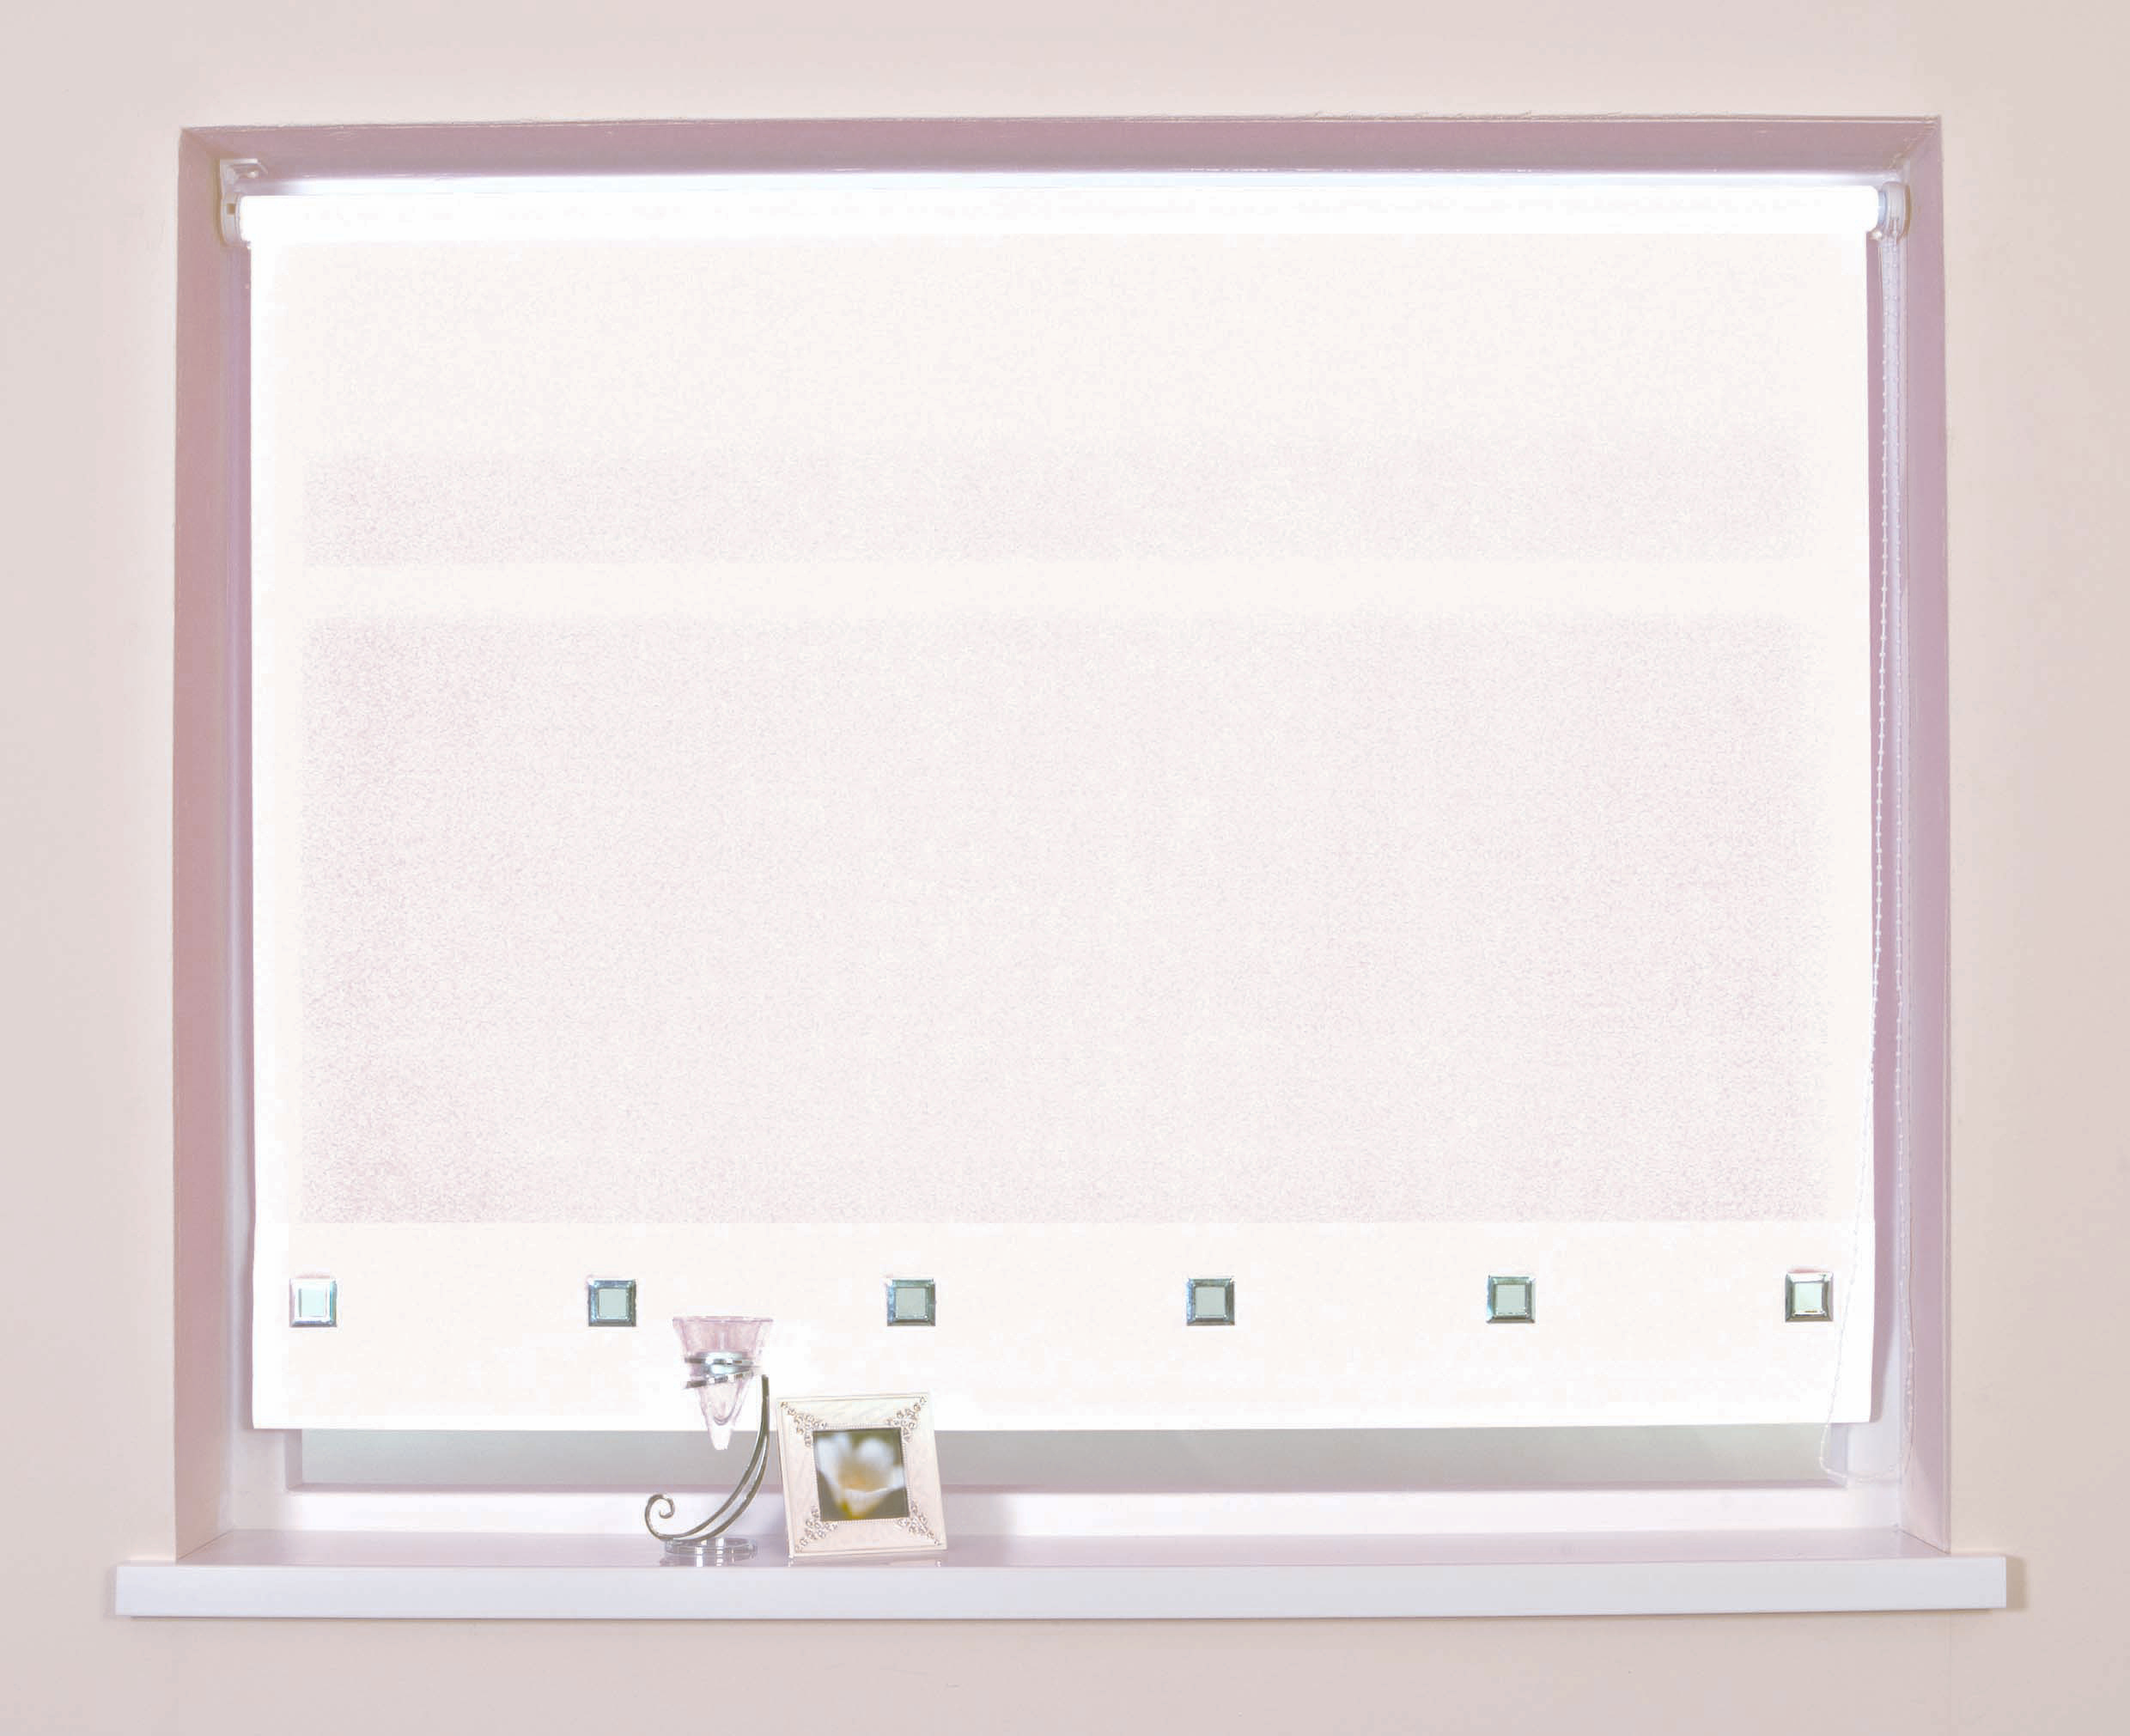 White Roller Blinds : Roller blinds fabric blind window square eyelet black red